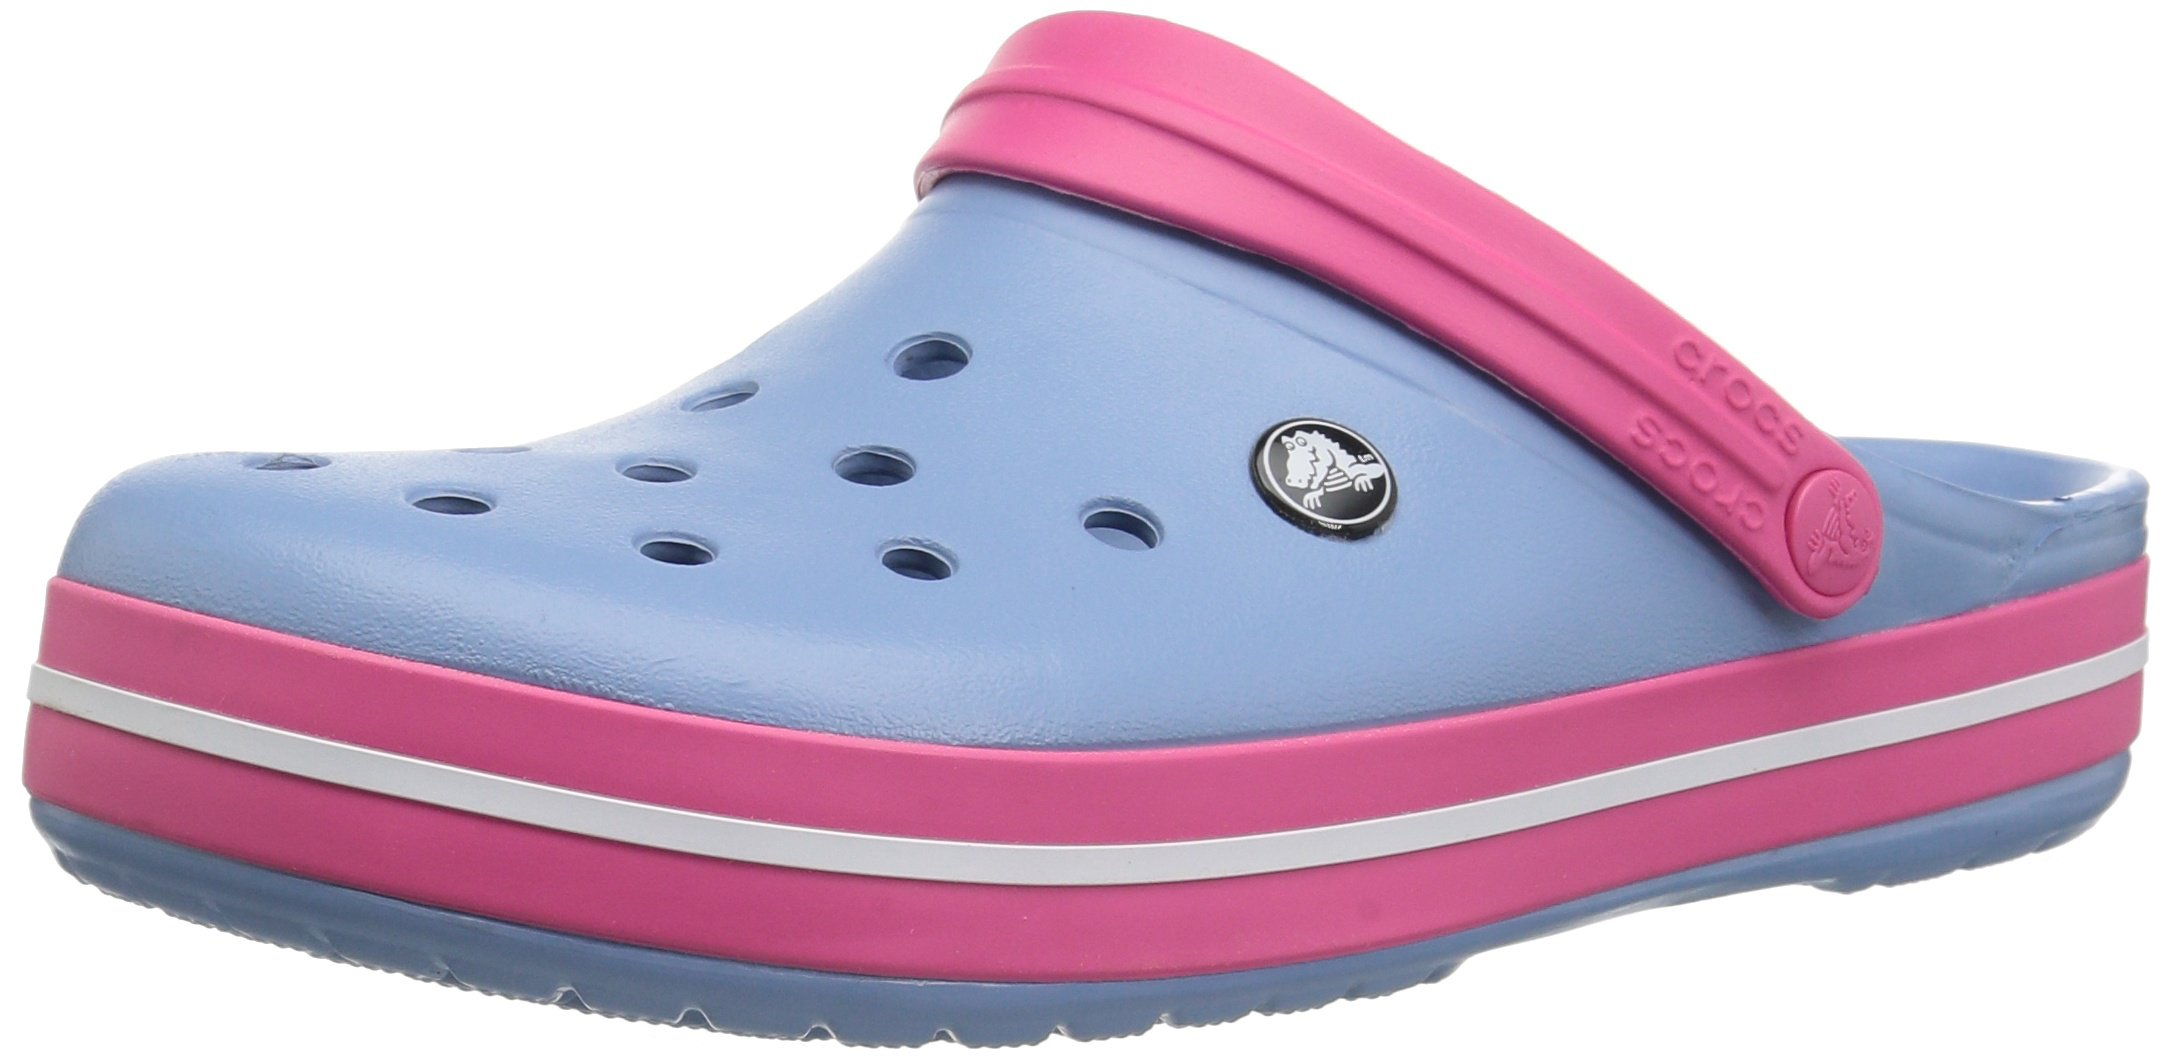 Crocs Unisex-Adult Crocband Clog, Chambray Blue/Paradise Pink, 11 US Men/13 US Women by Crocs